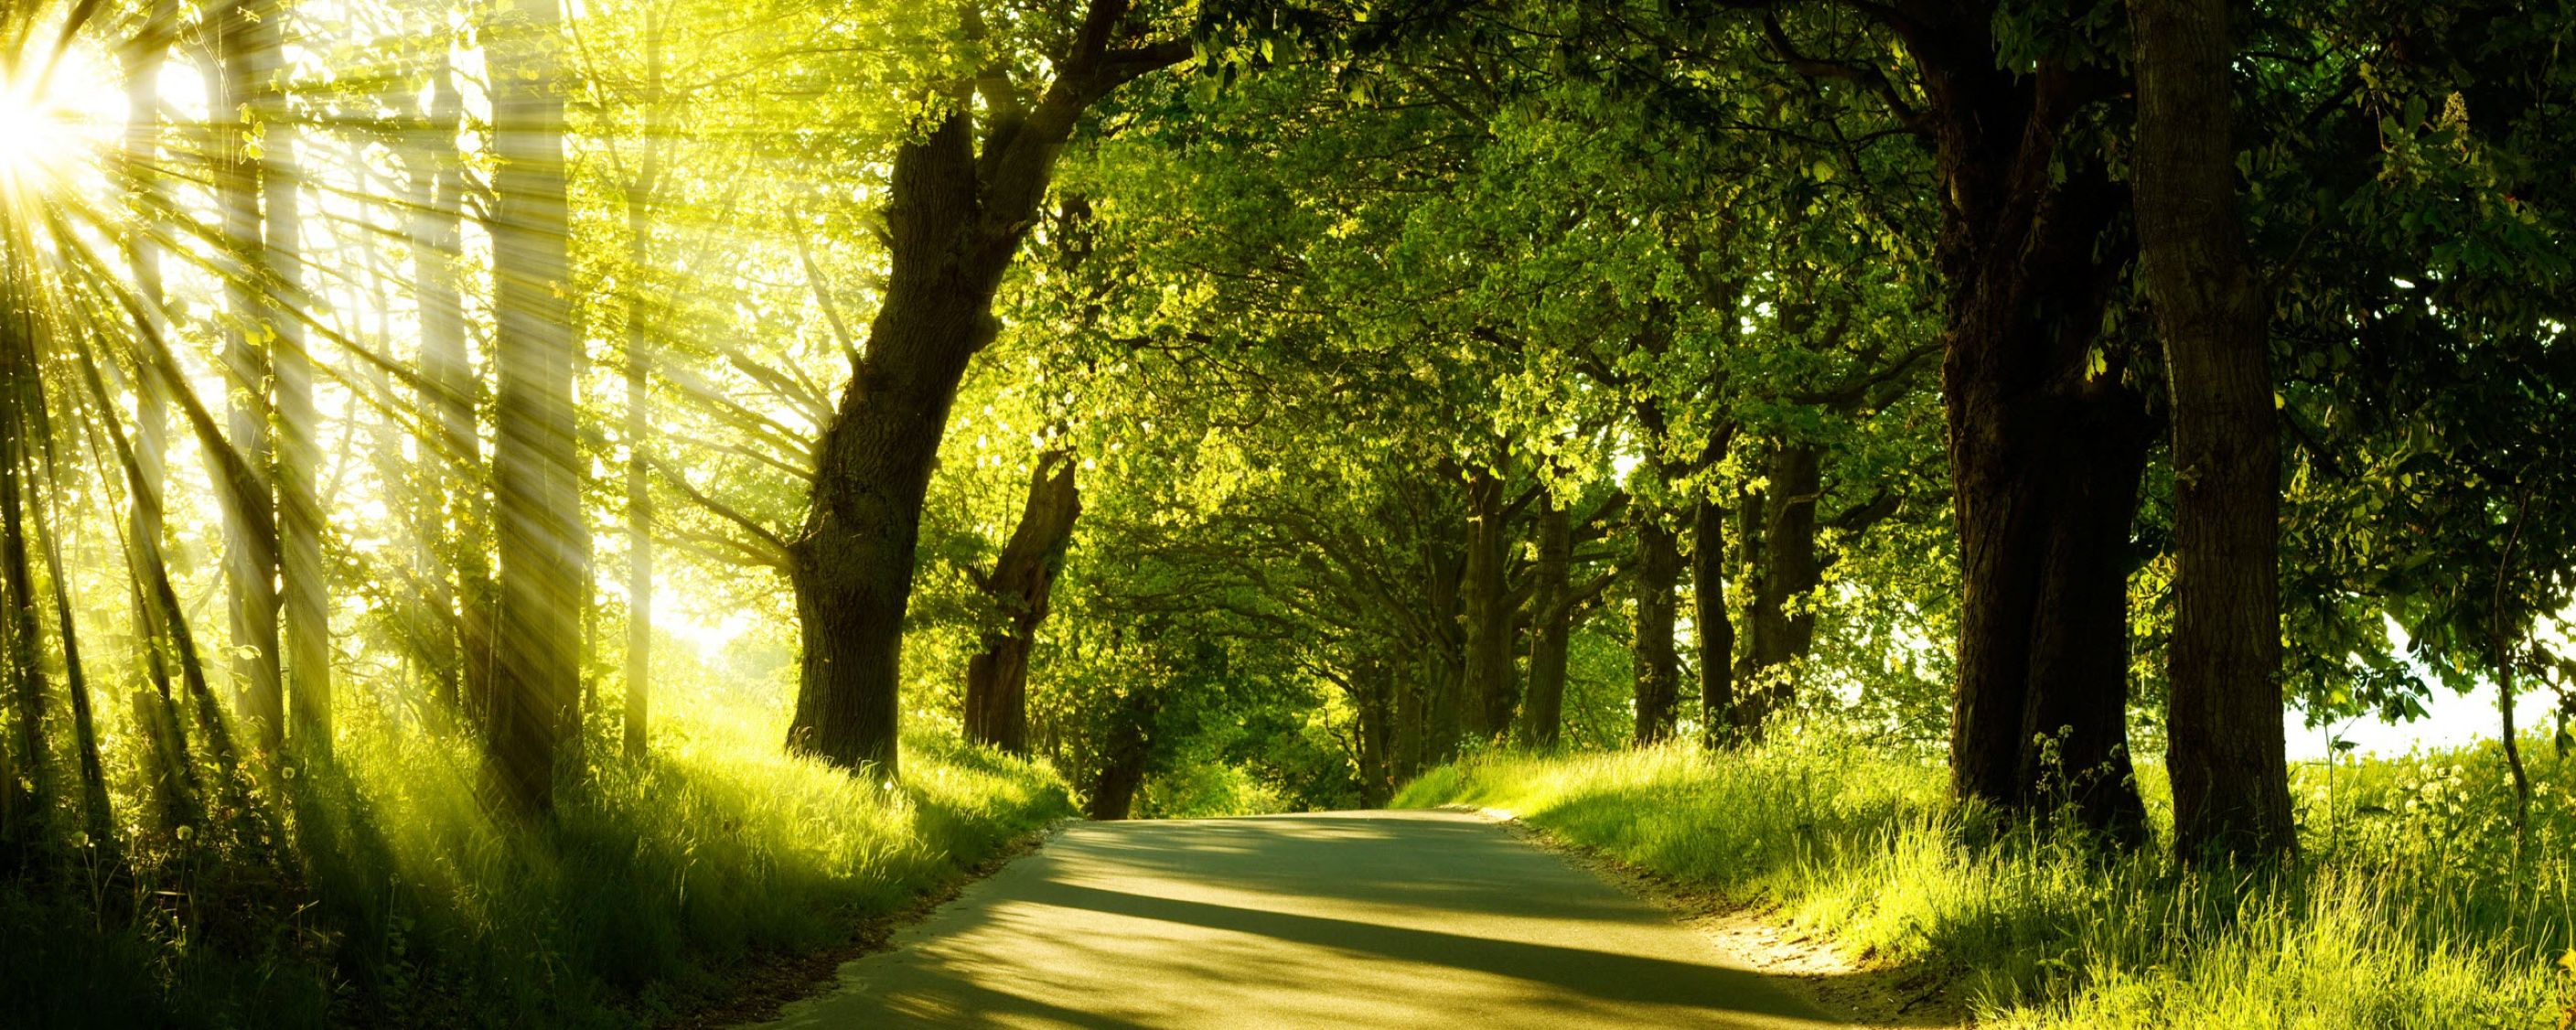 Download free HD Green Nature Dual Monitor Wallpaper, image